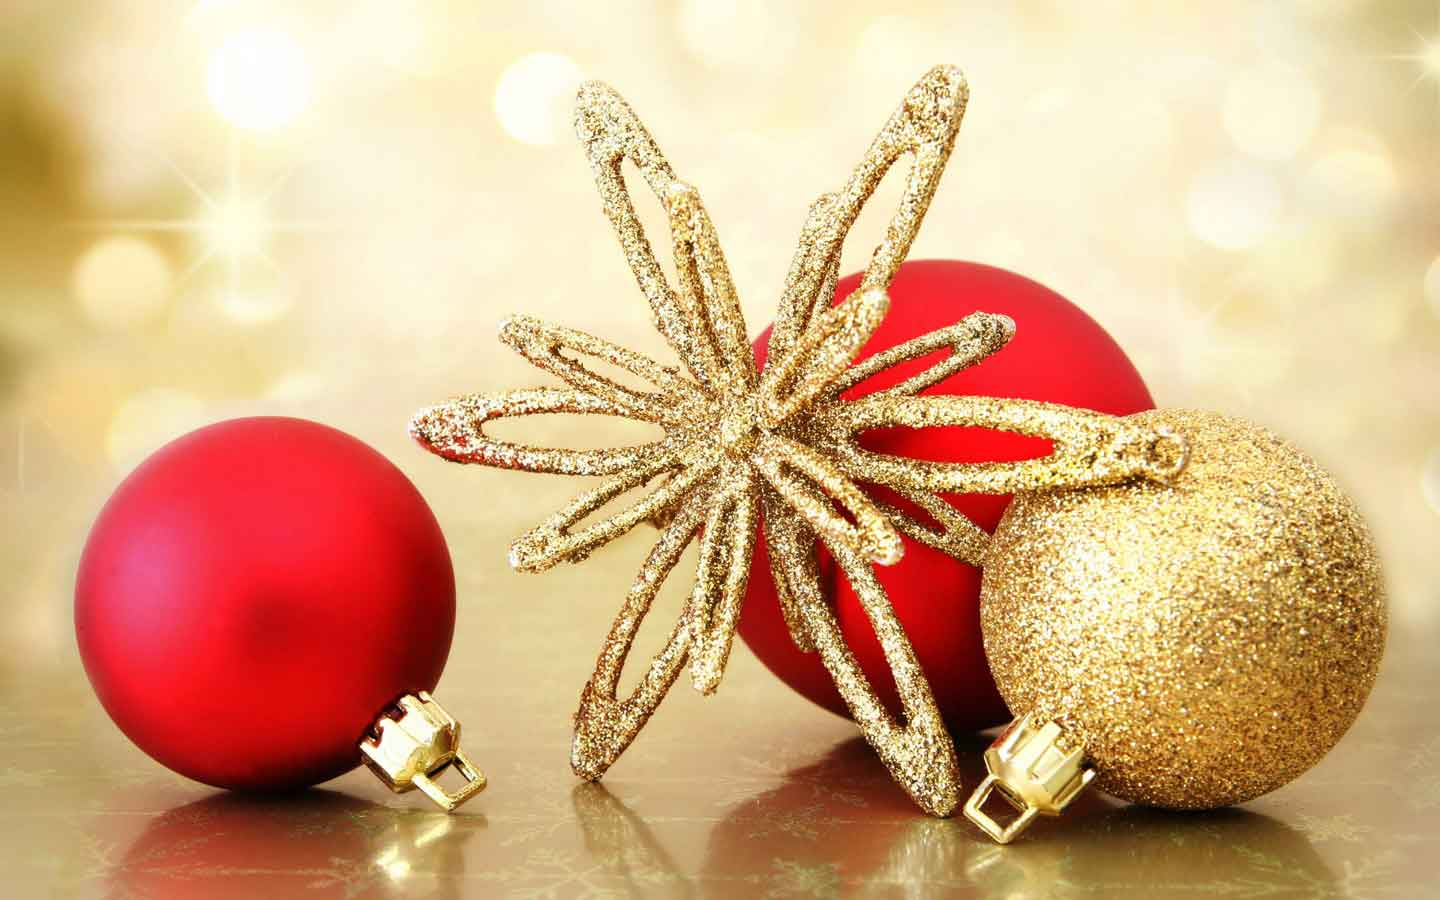 Stunning Christmas Ornaments Wallpaper